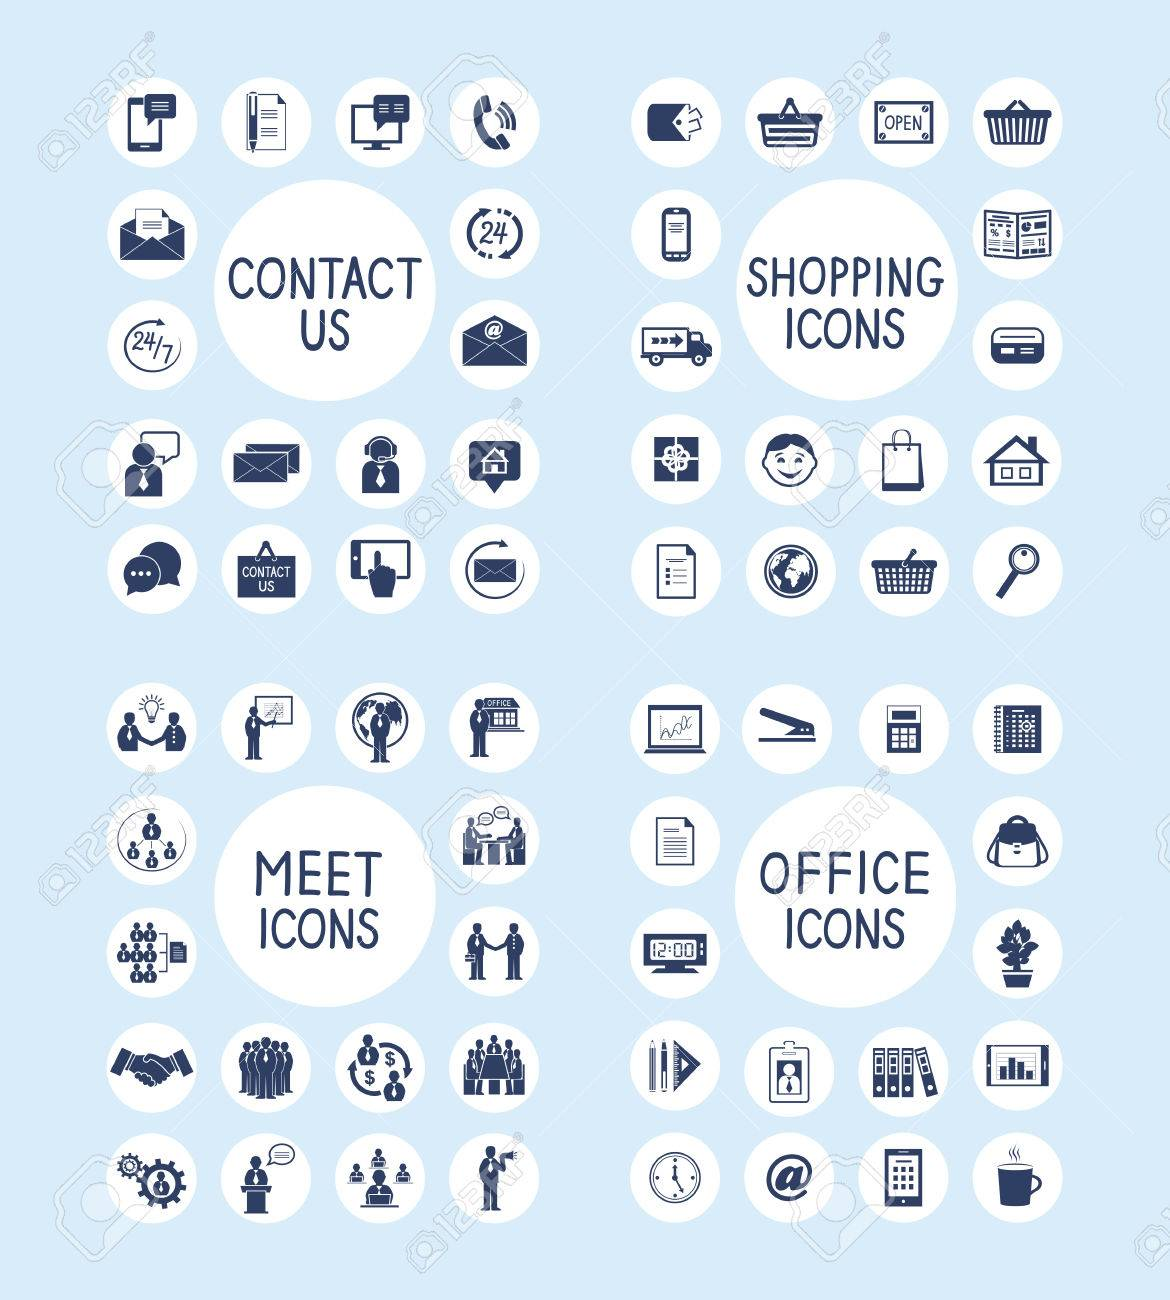 Business people meeting contact us customer care internet shopping marketing and office stationery supplies icons set isolated vector illustration - 31467055